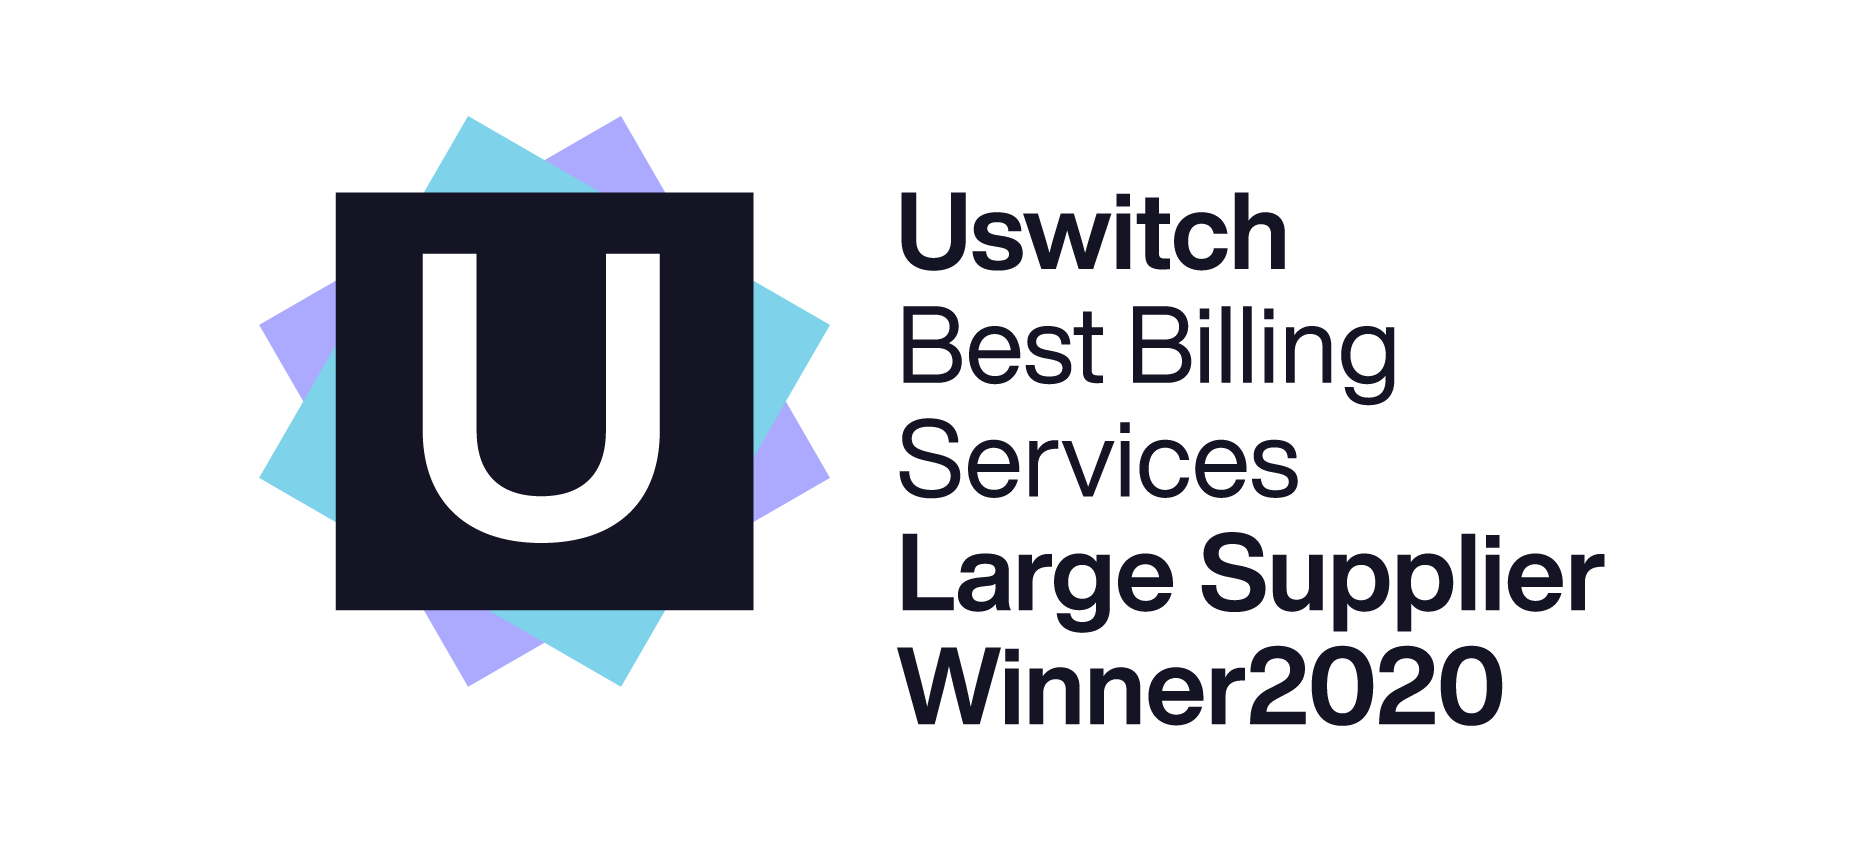 SSE won Uswitch Best Billing Services for a Large Supplier for 2020